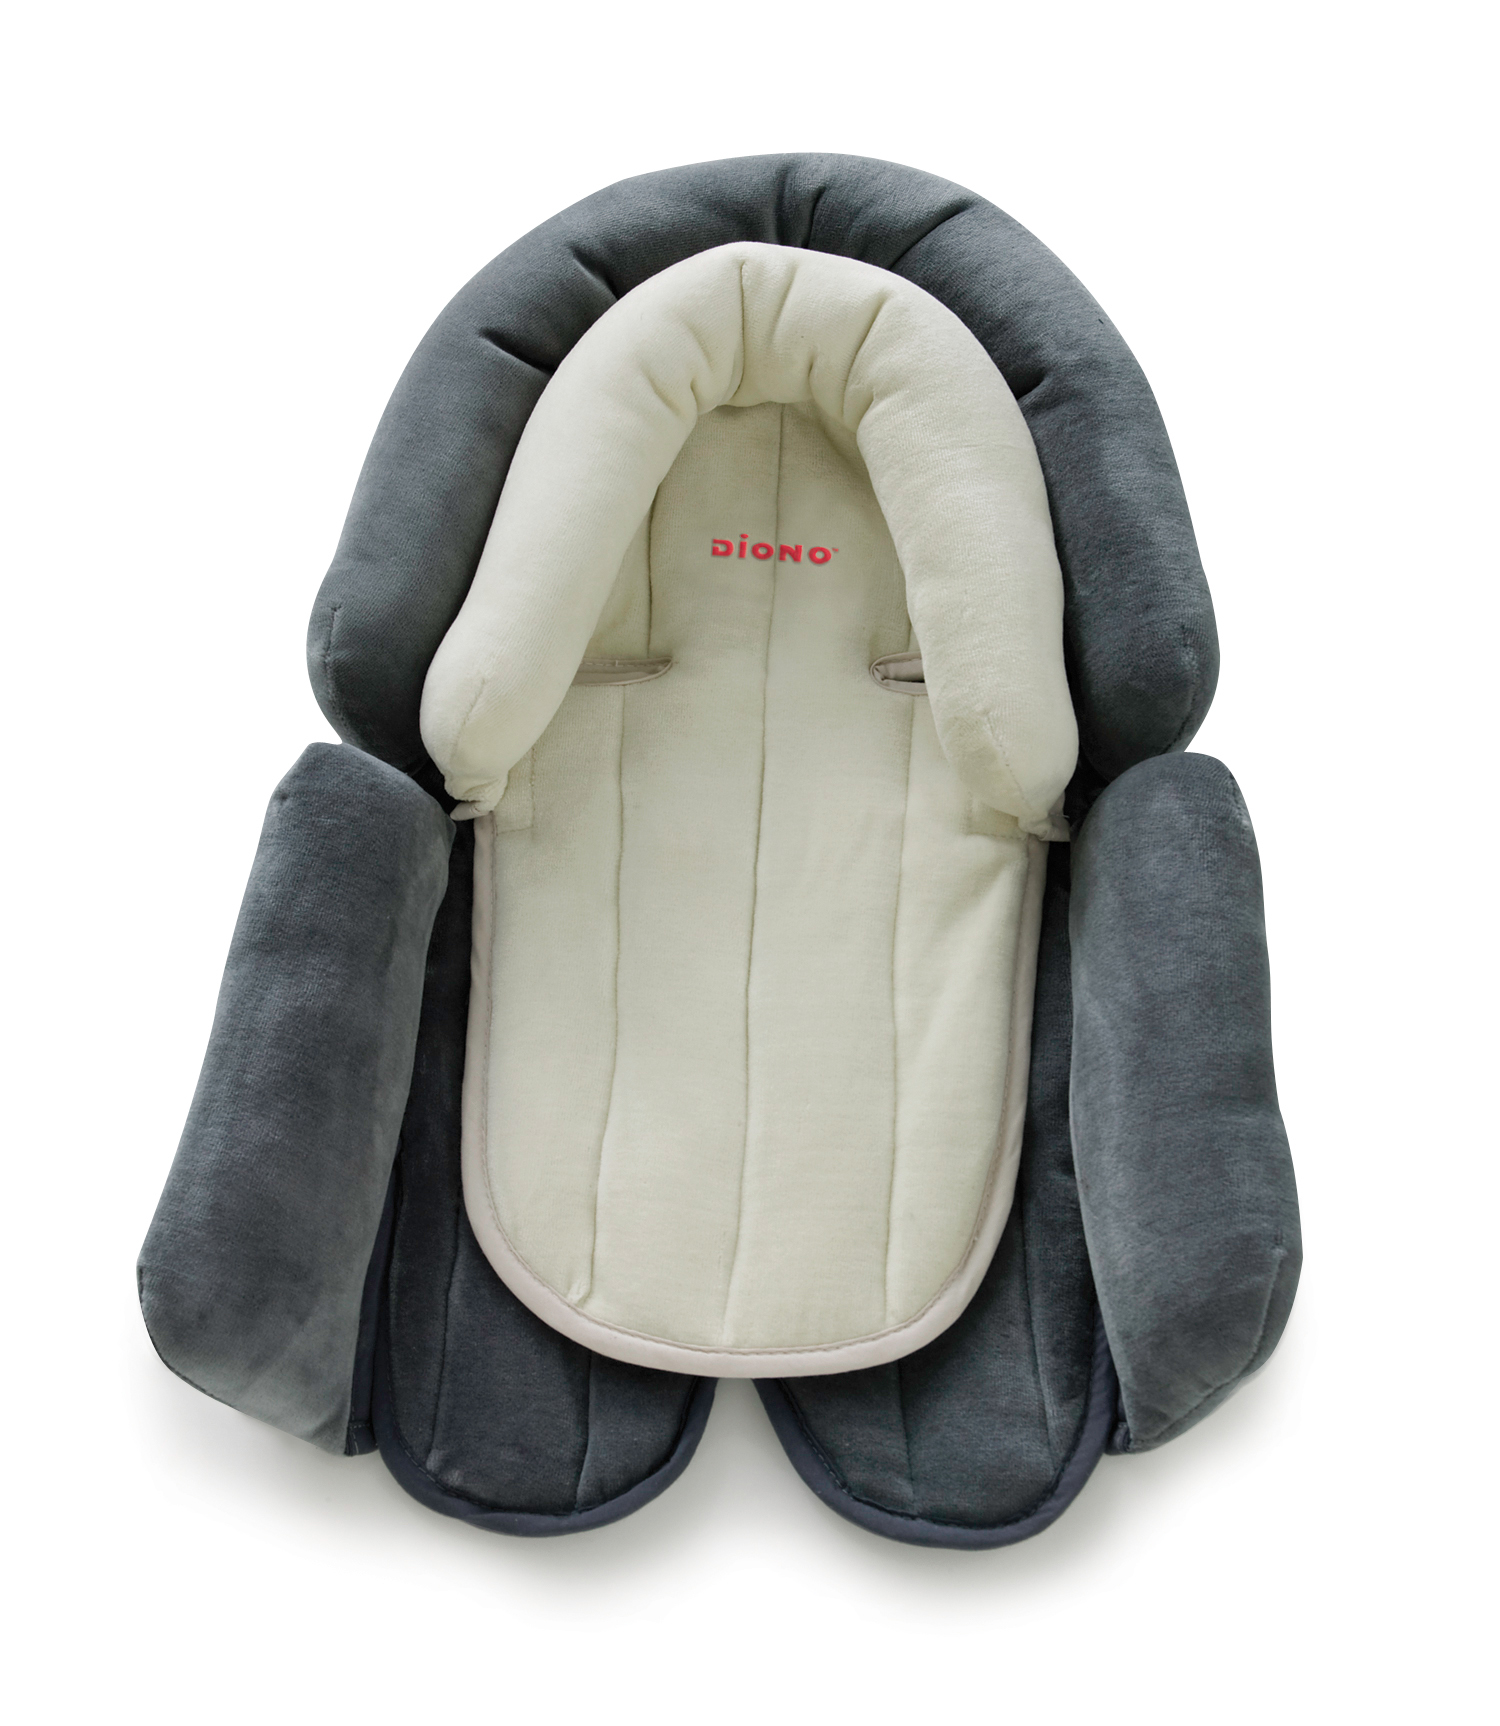 Diono CUDDLE SOFT Baby Head/Shoulder Support Pillow